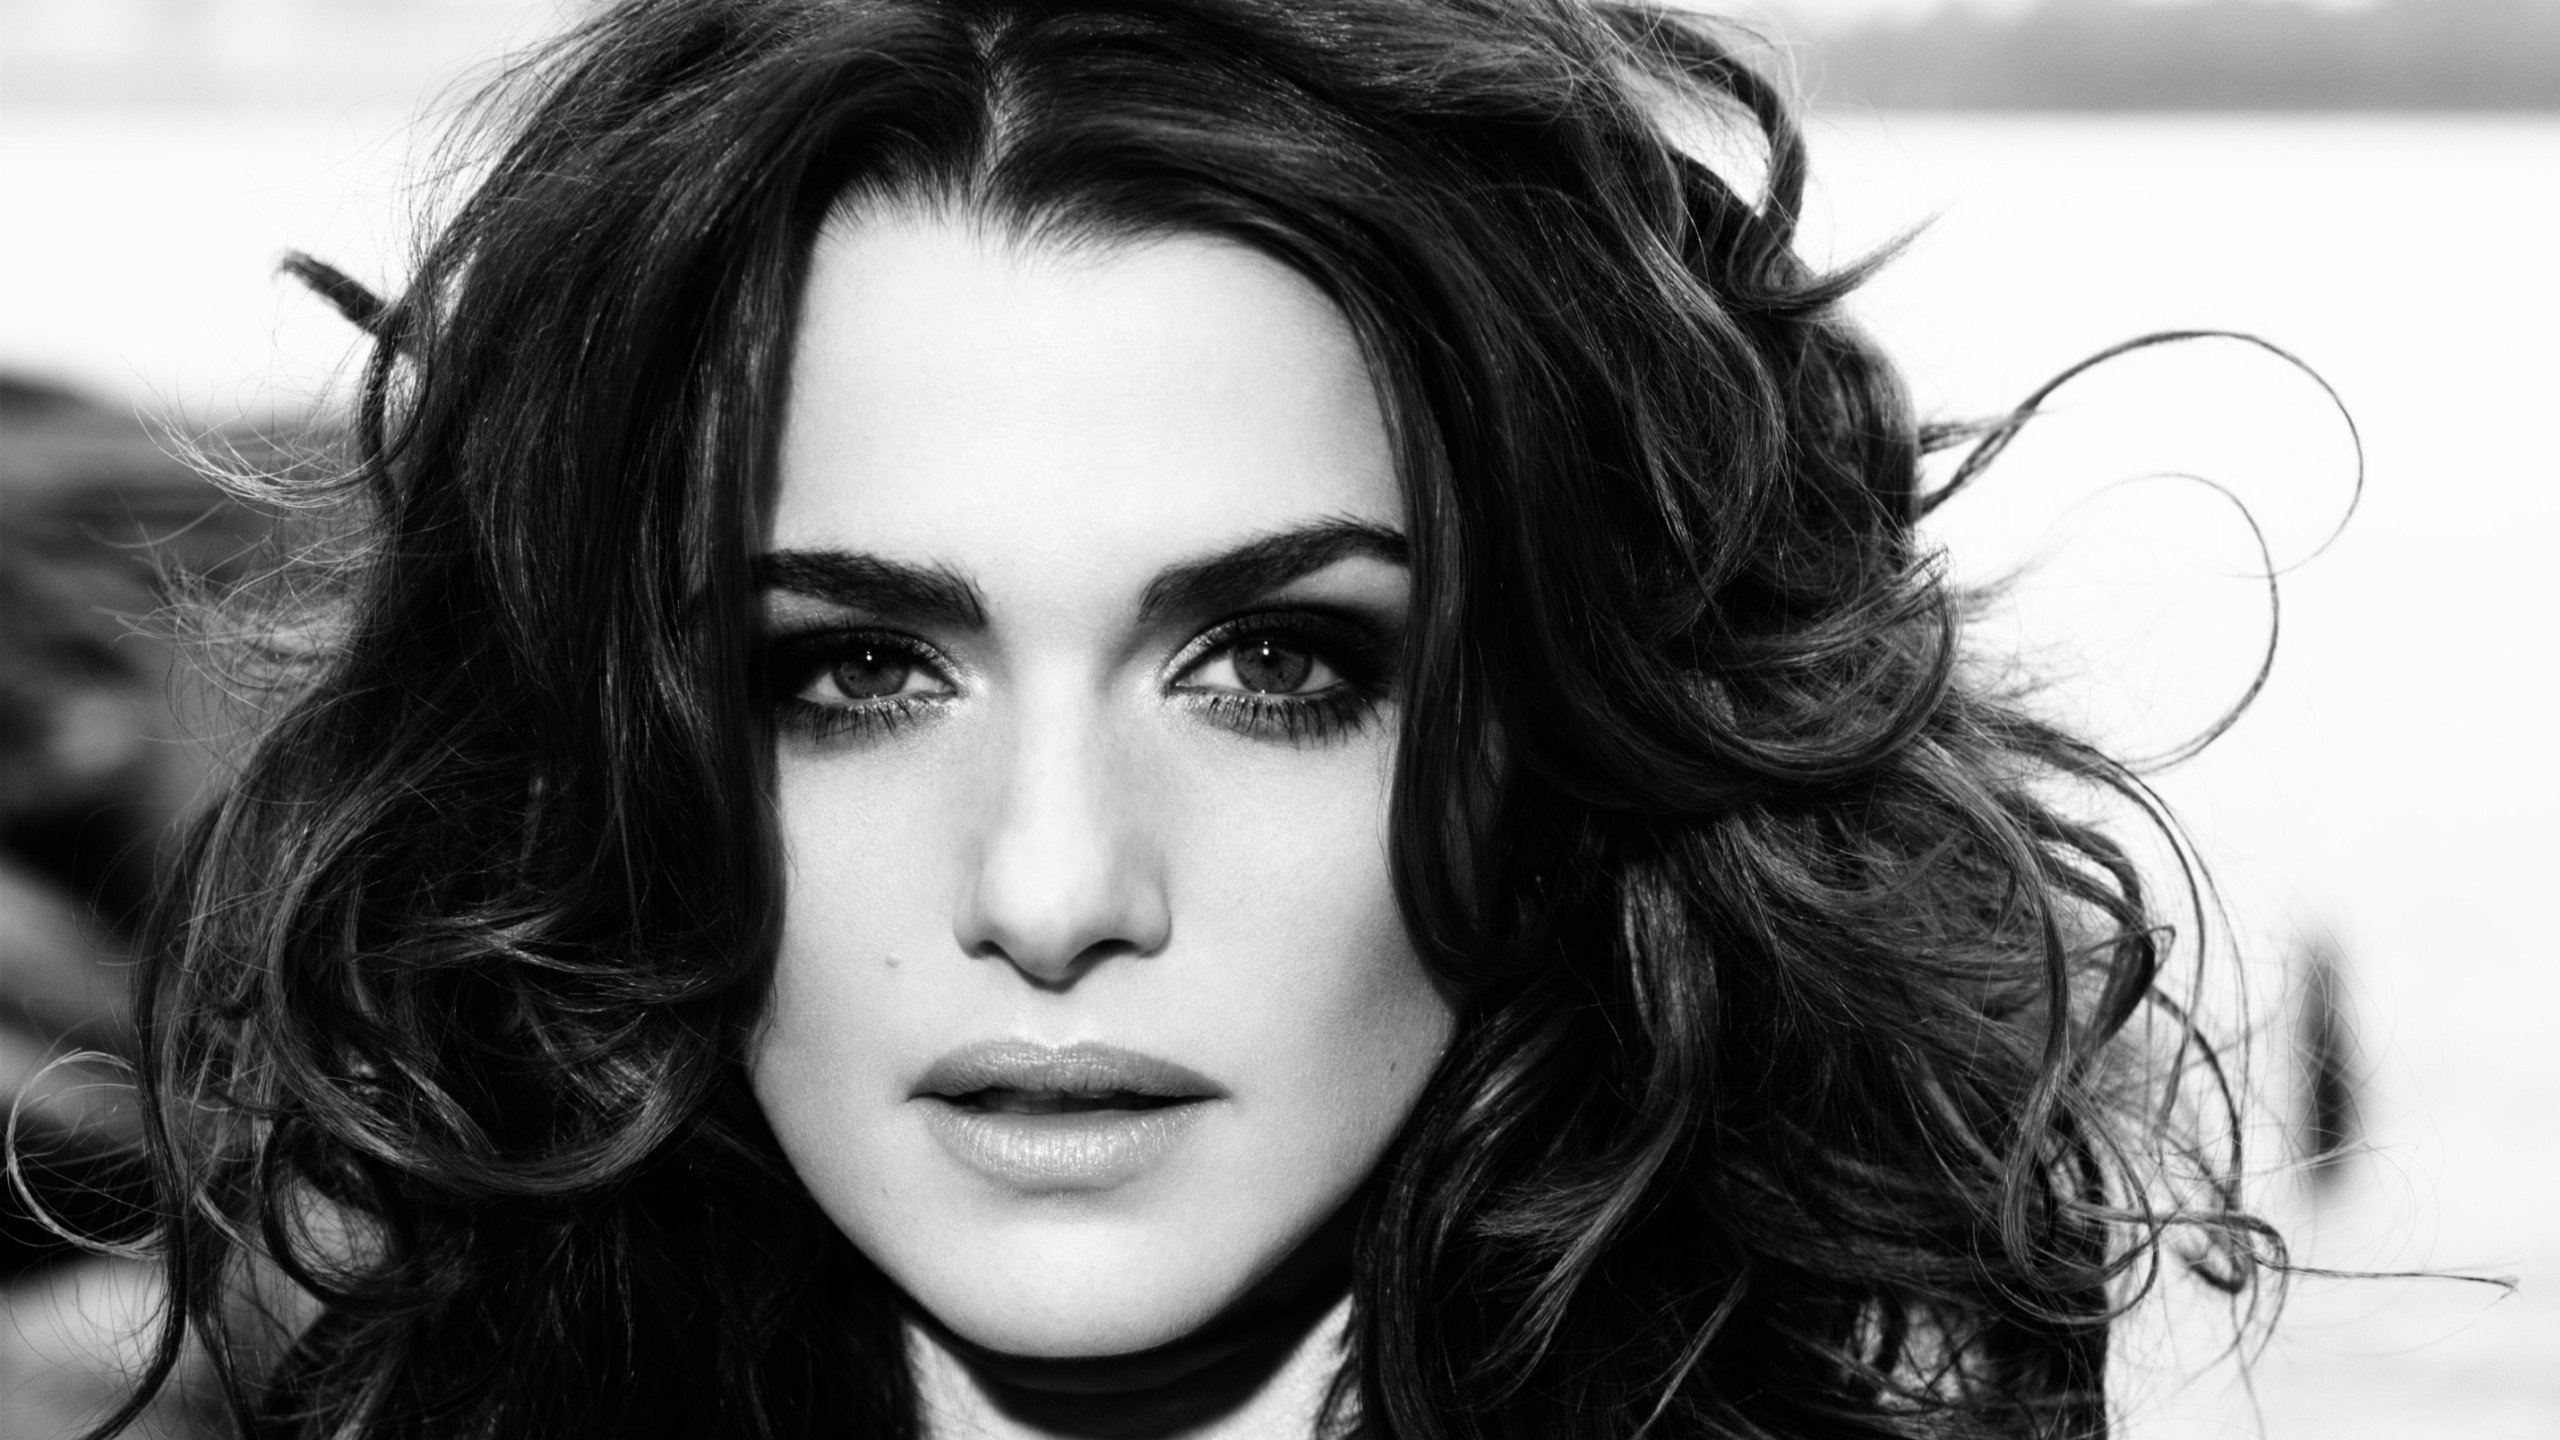 High resolution Rachel Weisz hd 2560x1440 background ID:276031 for PC